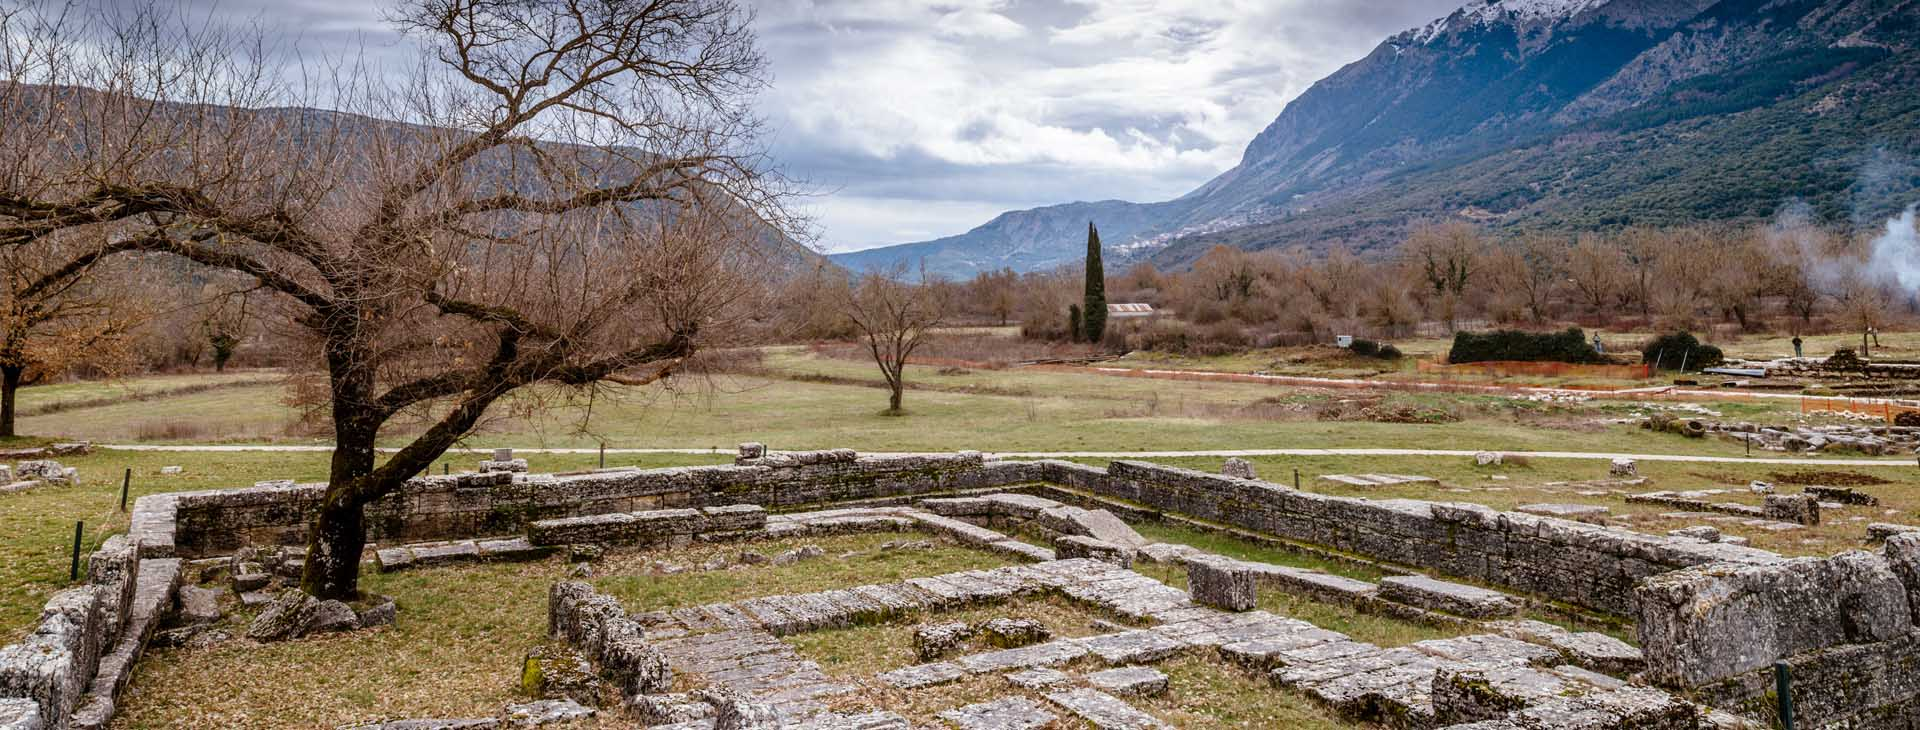 Archaeological site of Dodona, Ioannina